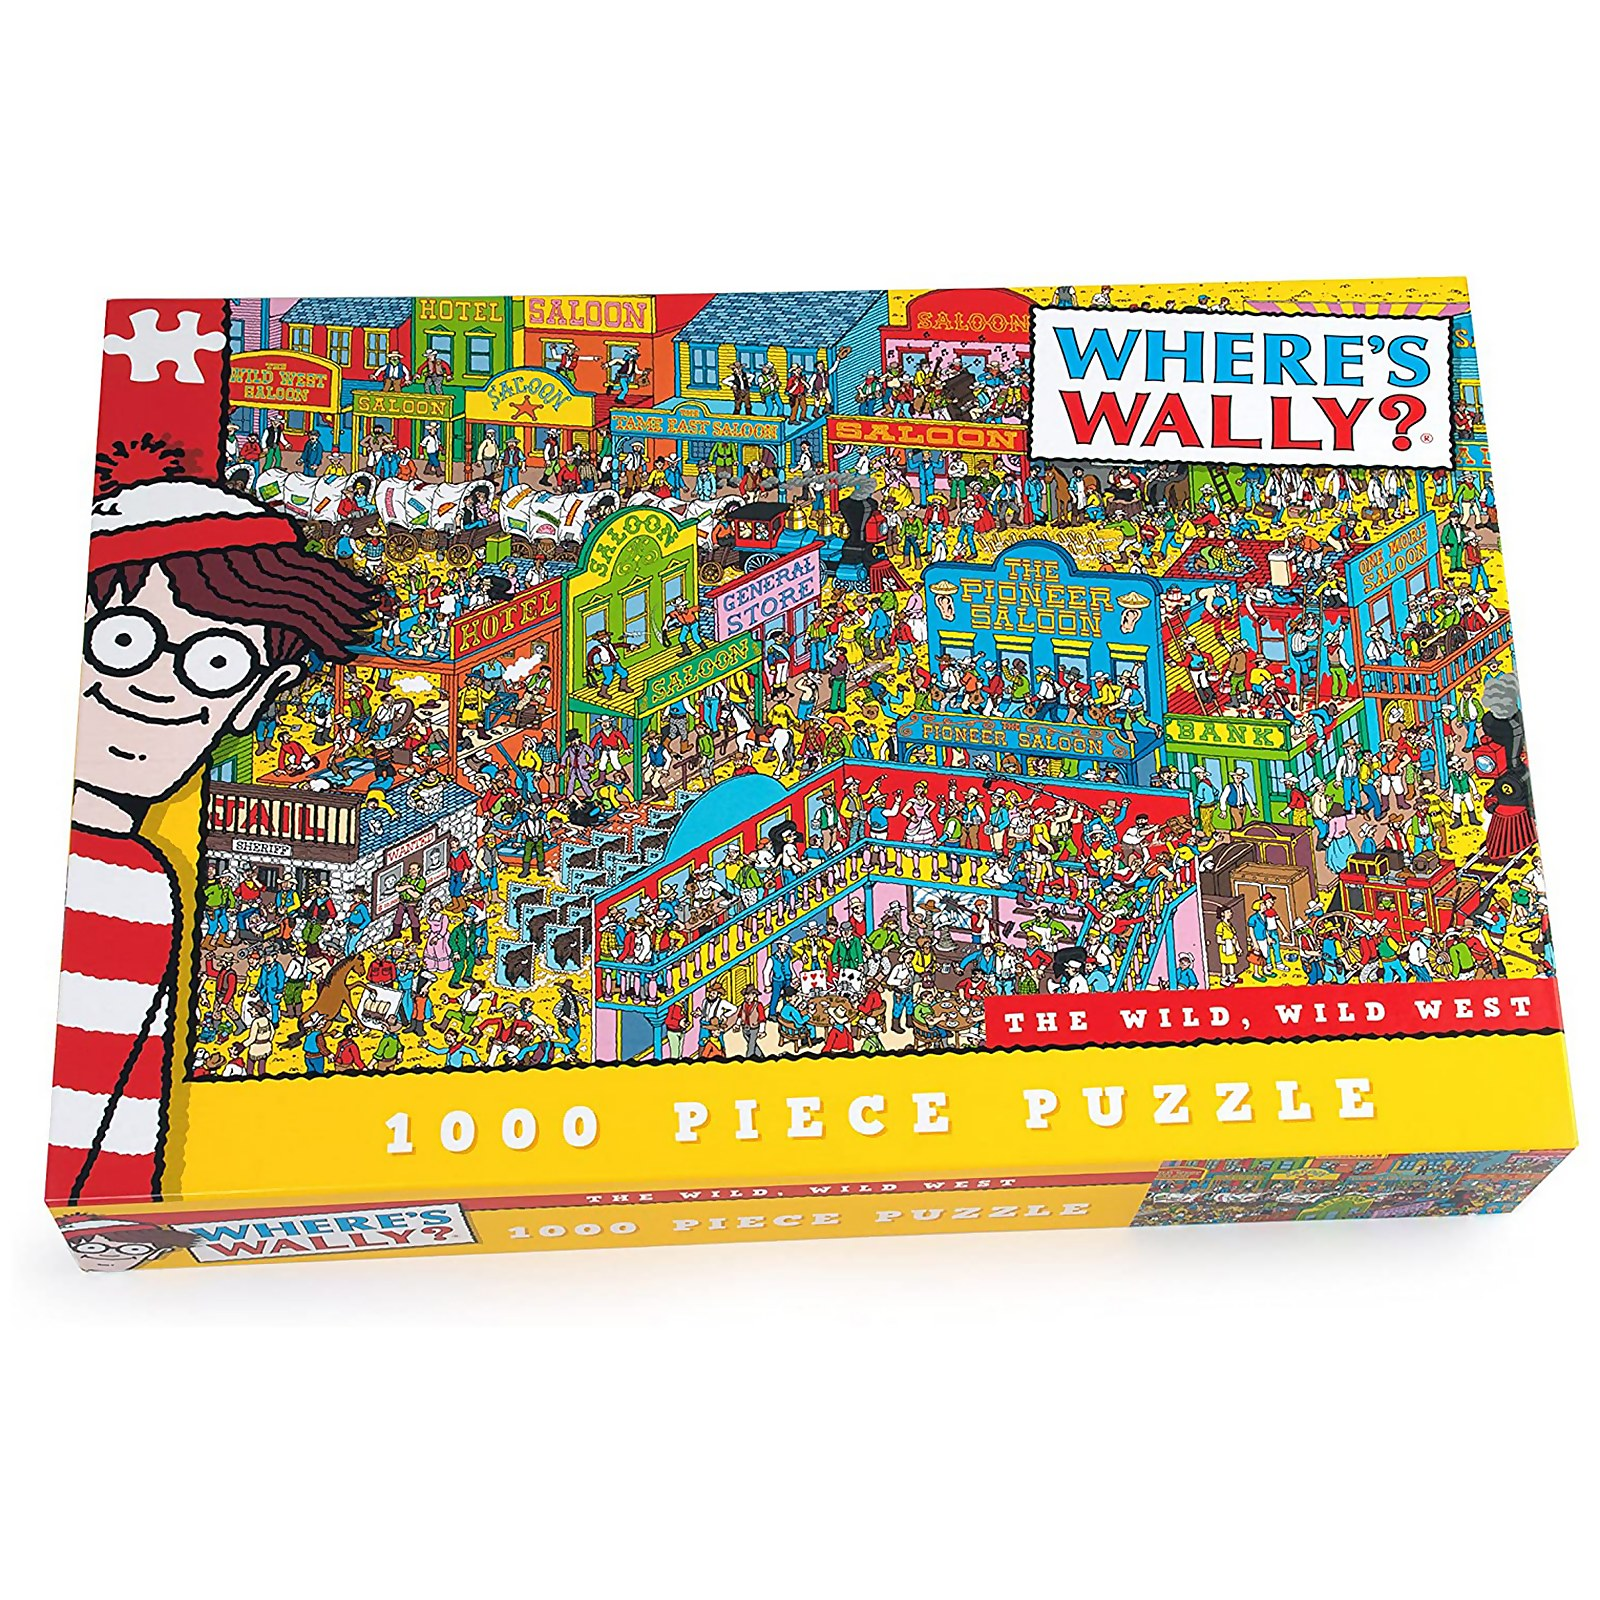 Wheres Wally The Wild Wild West Jigsaw Puzzle (1000 Pieces)